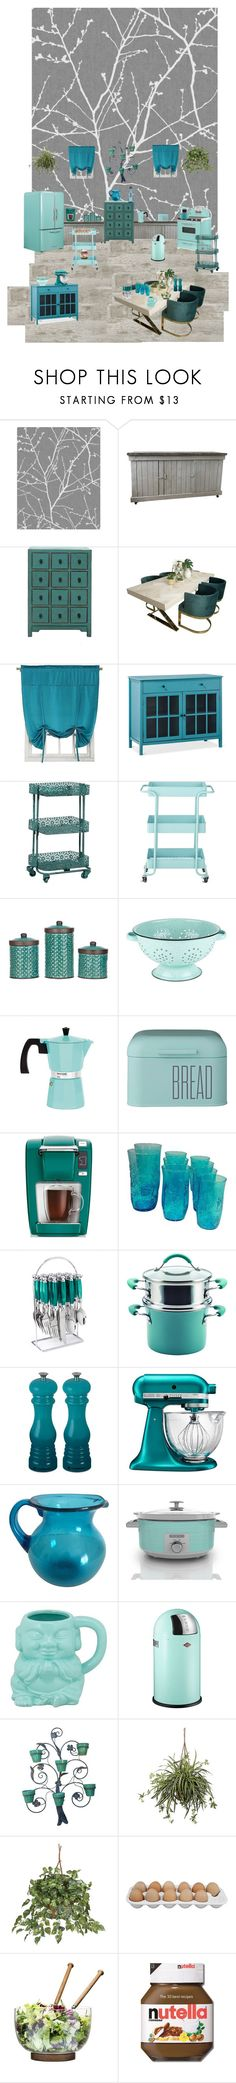 """Teal kitchen"" by lorinquerzombie ❤ liked on Polyvore featuring interior, interiors, interior design, home, home decor, interior decorating, Sun Zero, Threshold, Linon and Home Decorators Collection"